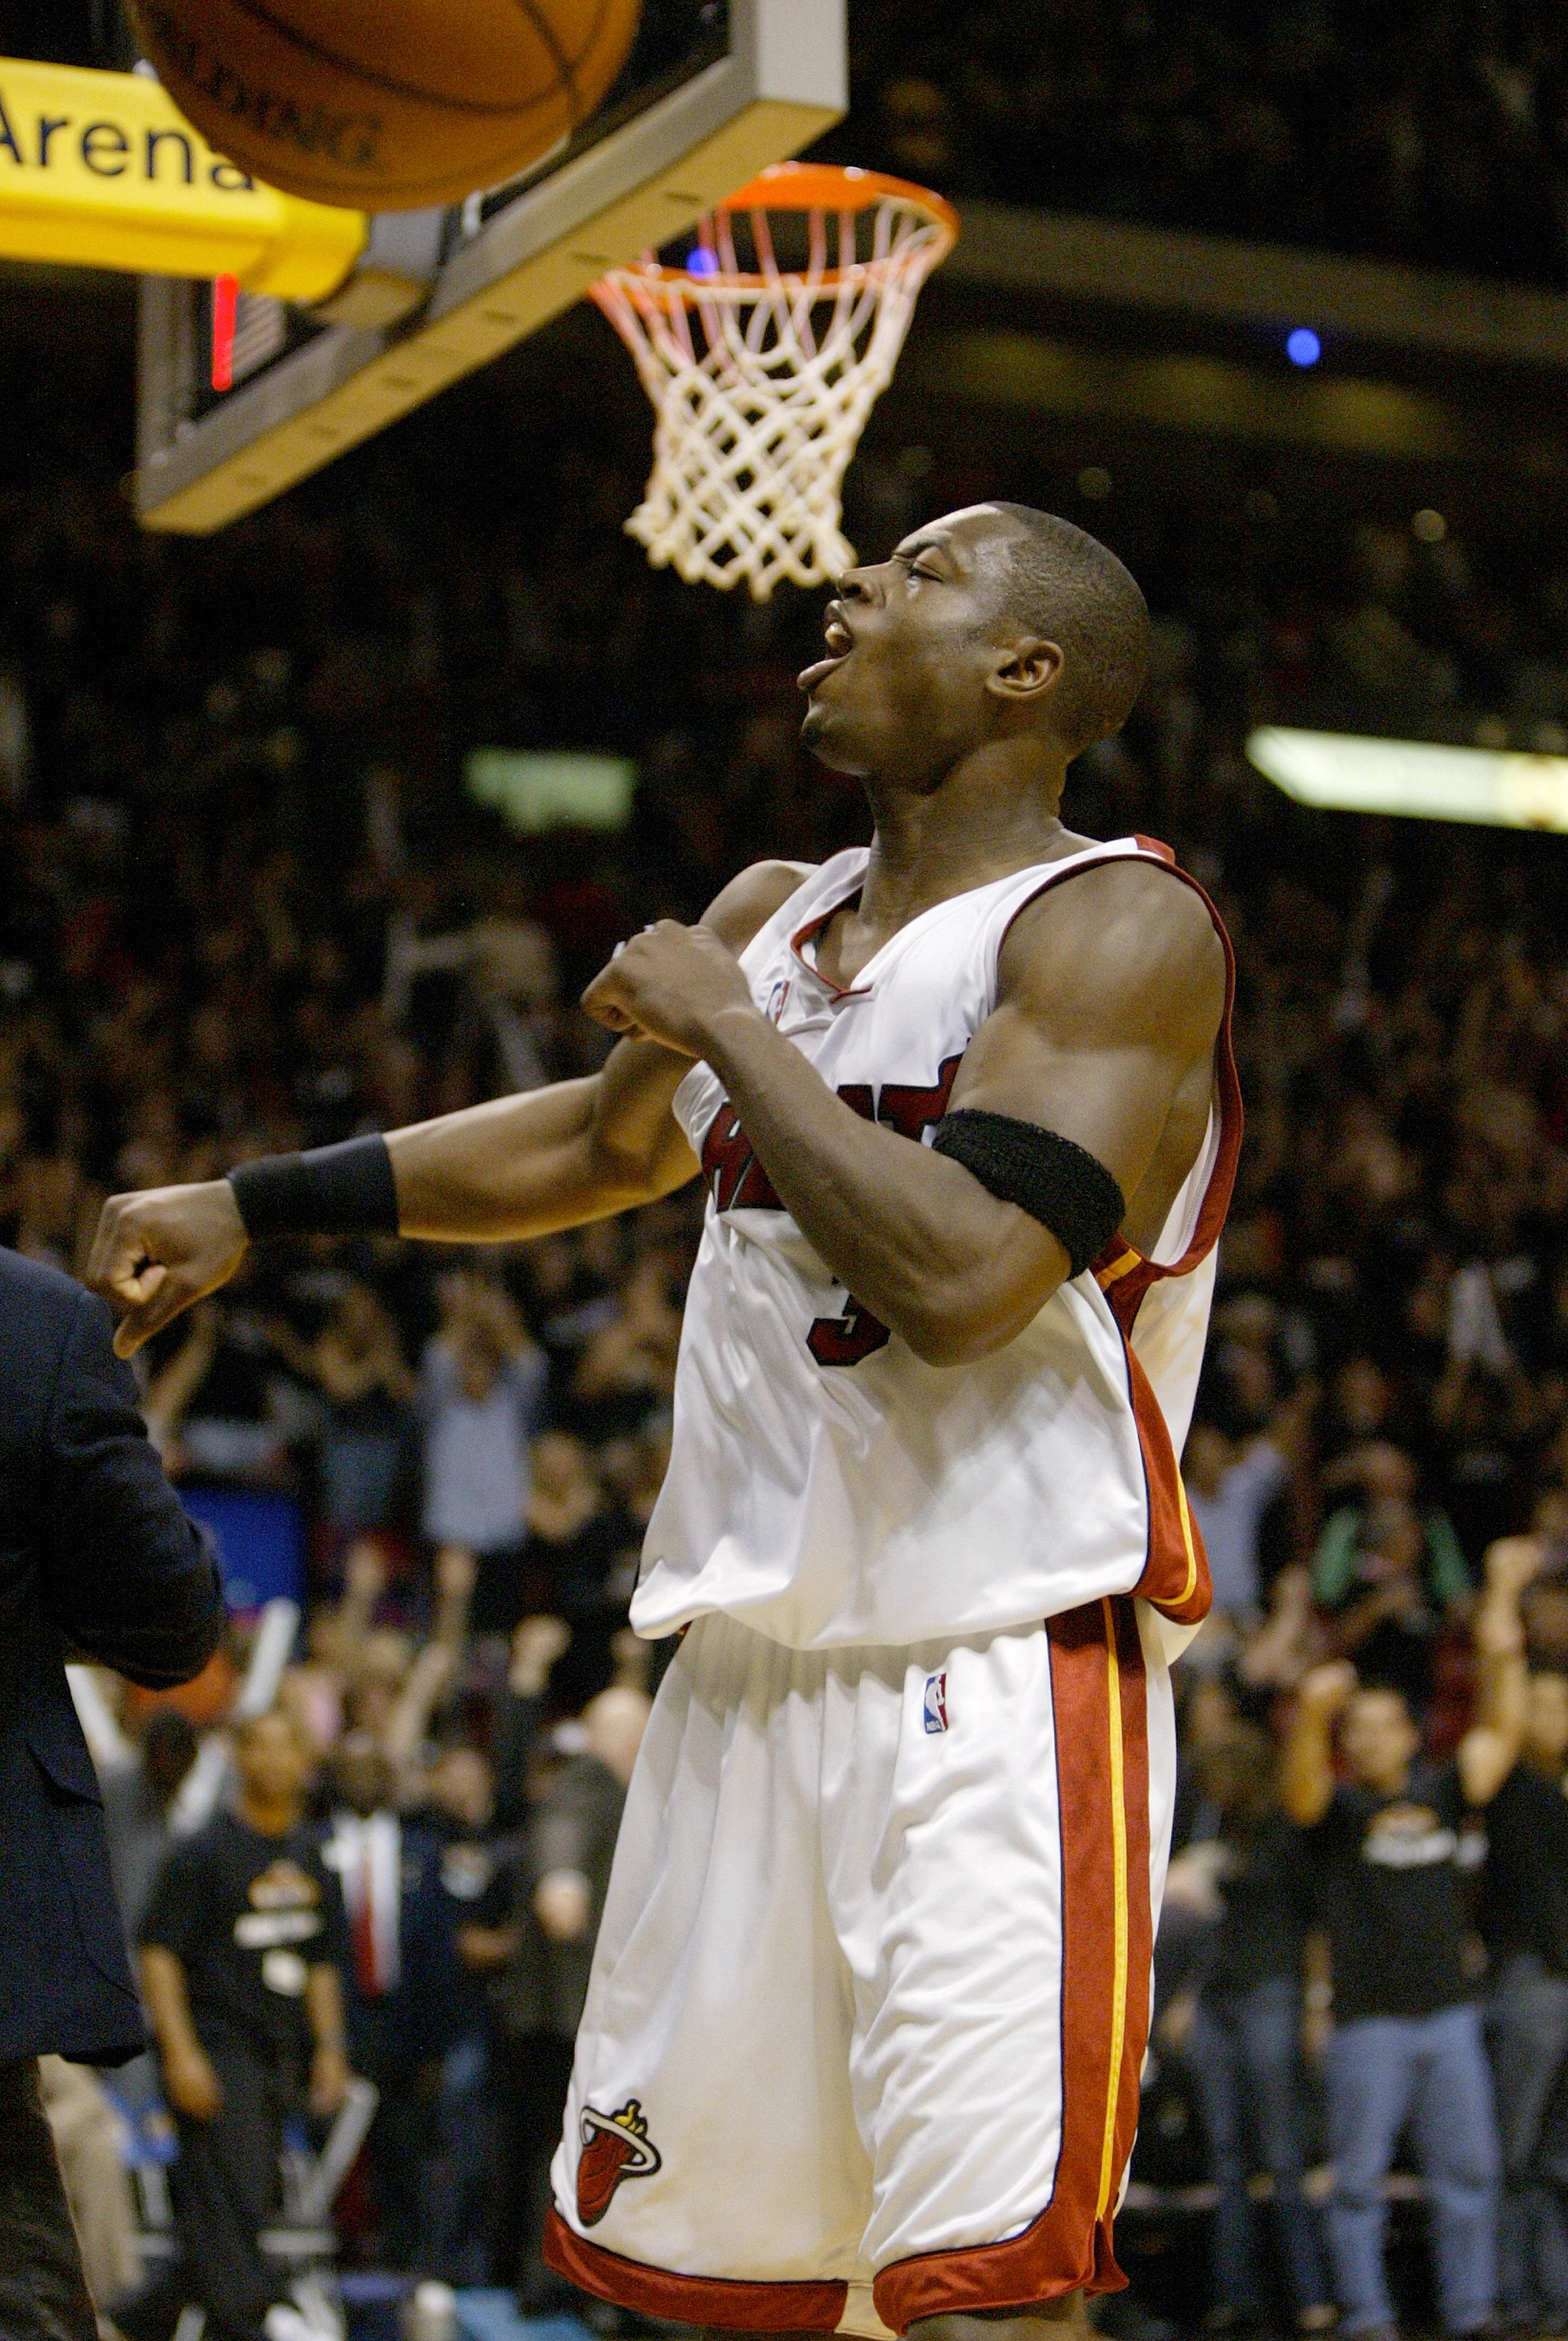 MIAMI - APRIL 18:  Dwyane Wade #3 of the Miami Heat celebrates after the game after hitting the final shot to win 81-79 against the New Orleans Hornets during game one, round one of the 2004 NBA Playoffs April 18, 2004 at the American Airlines Arena in Mi